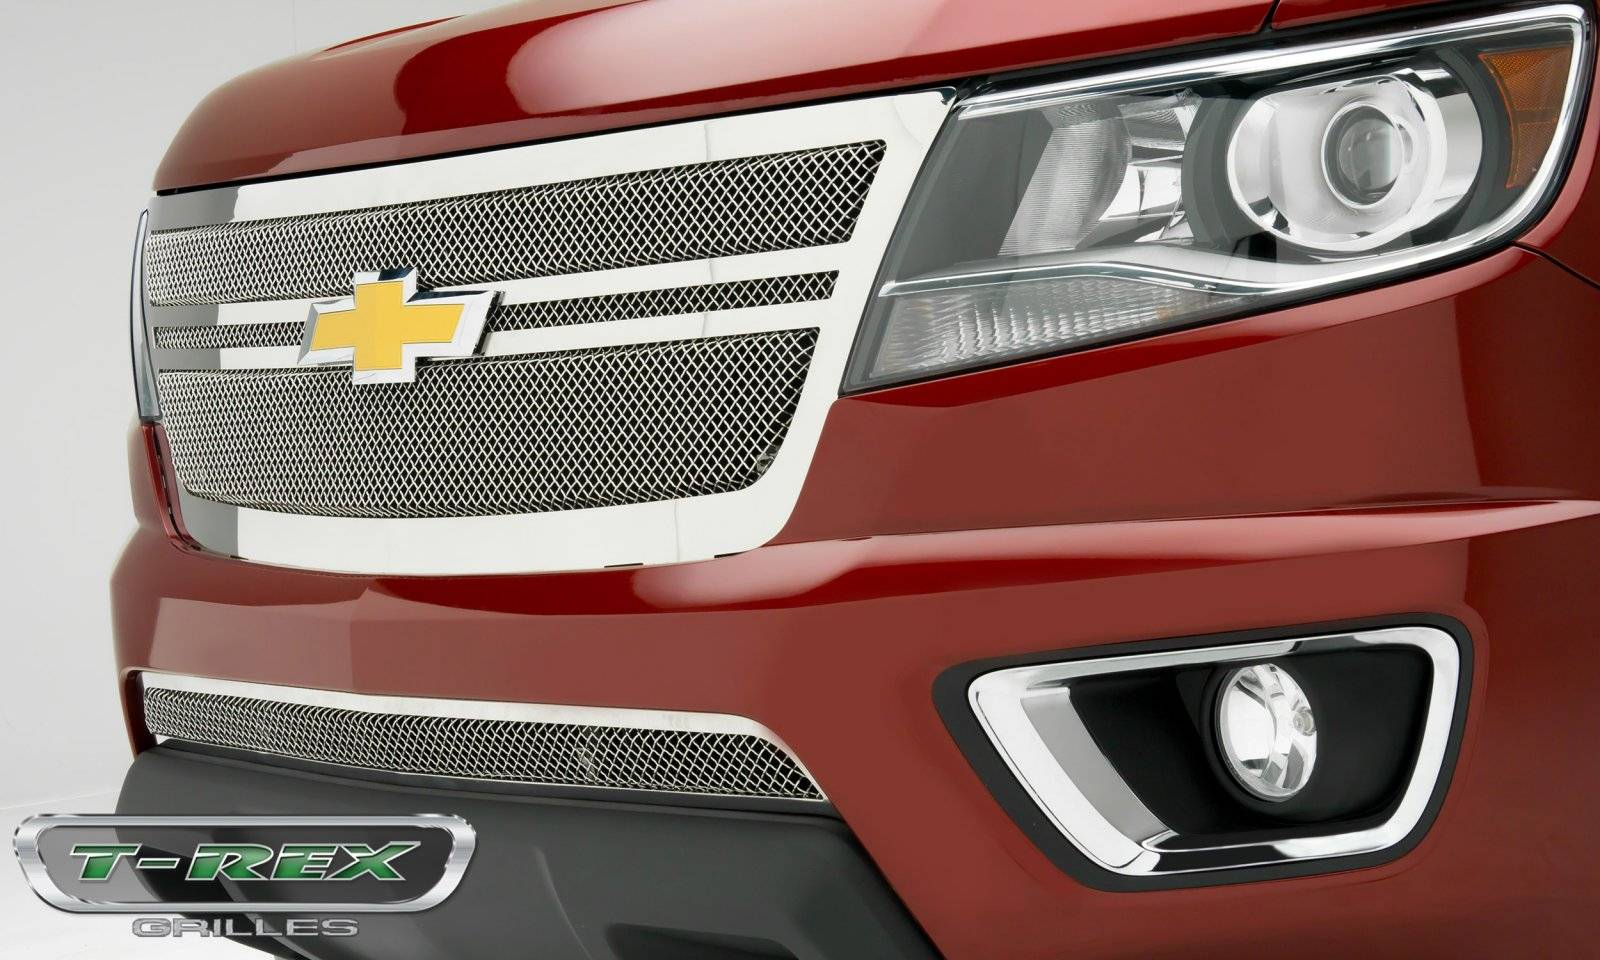 T-REX Grilles - Chevrolet Colorado - Upper Class Series - Center 2 Bar Design - Replacement Main Grille with Polished Stainless Steel Finish - Pt # 54268